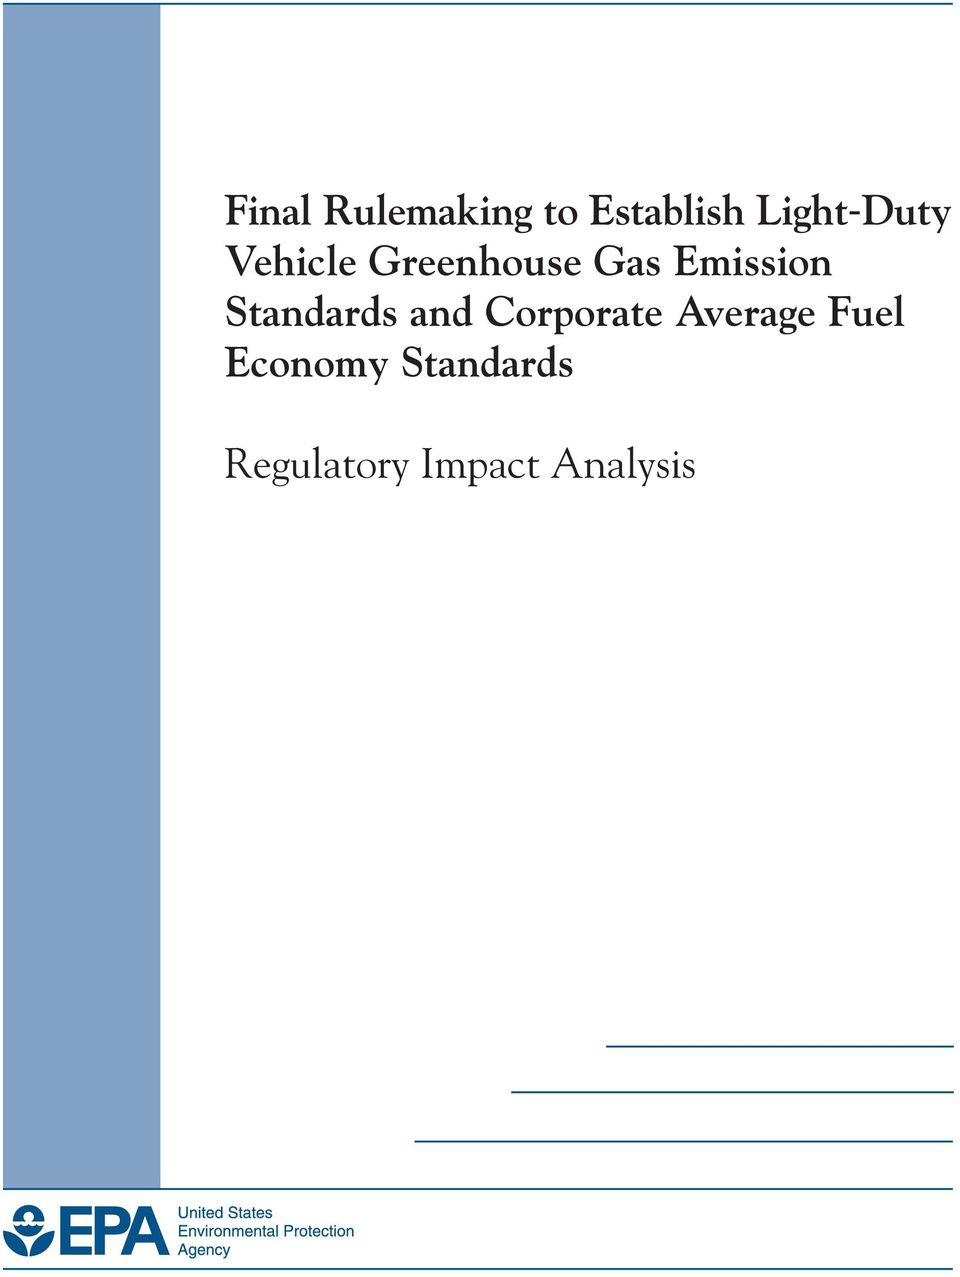 Emission Standards and Corporate